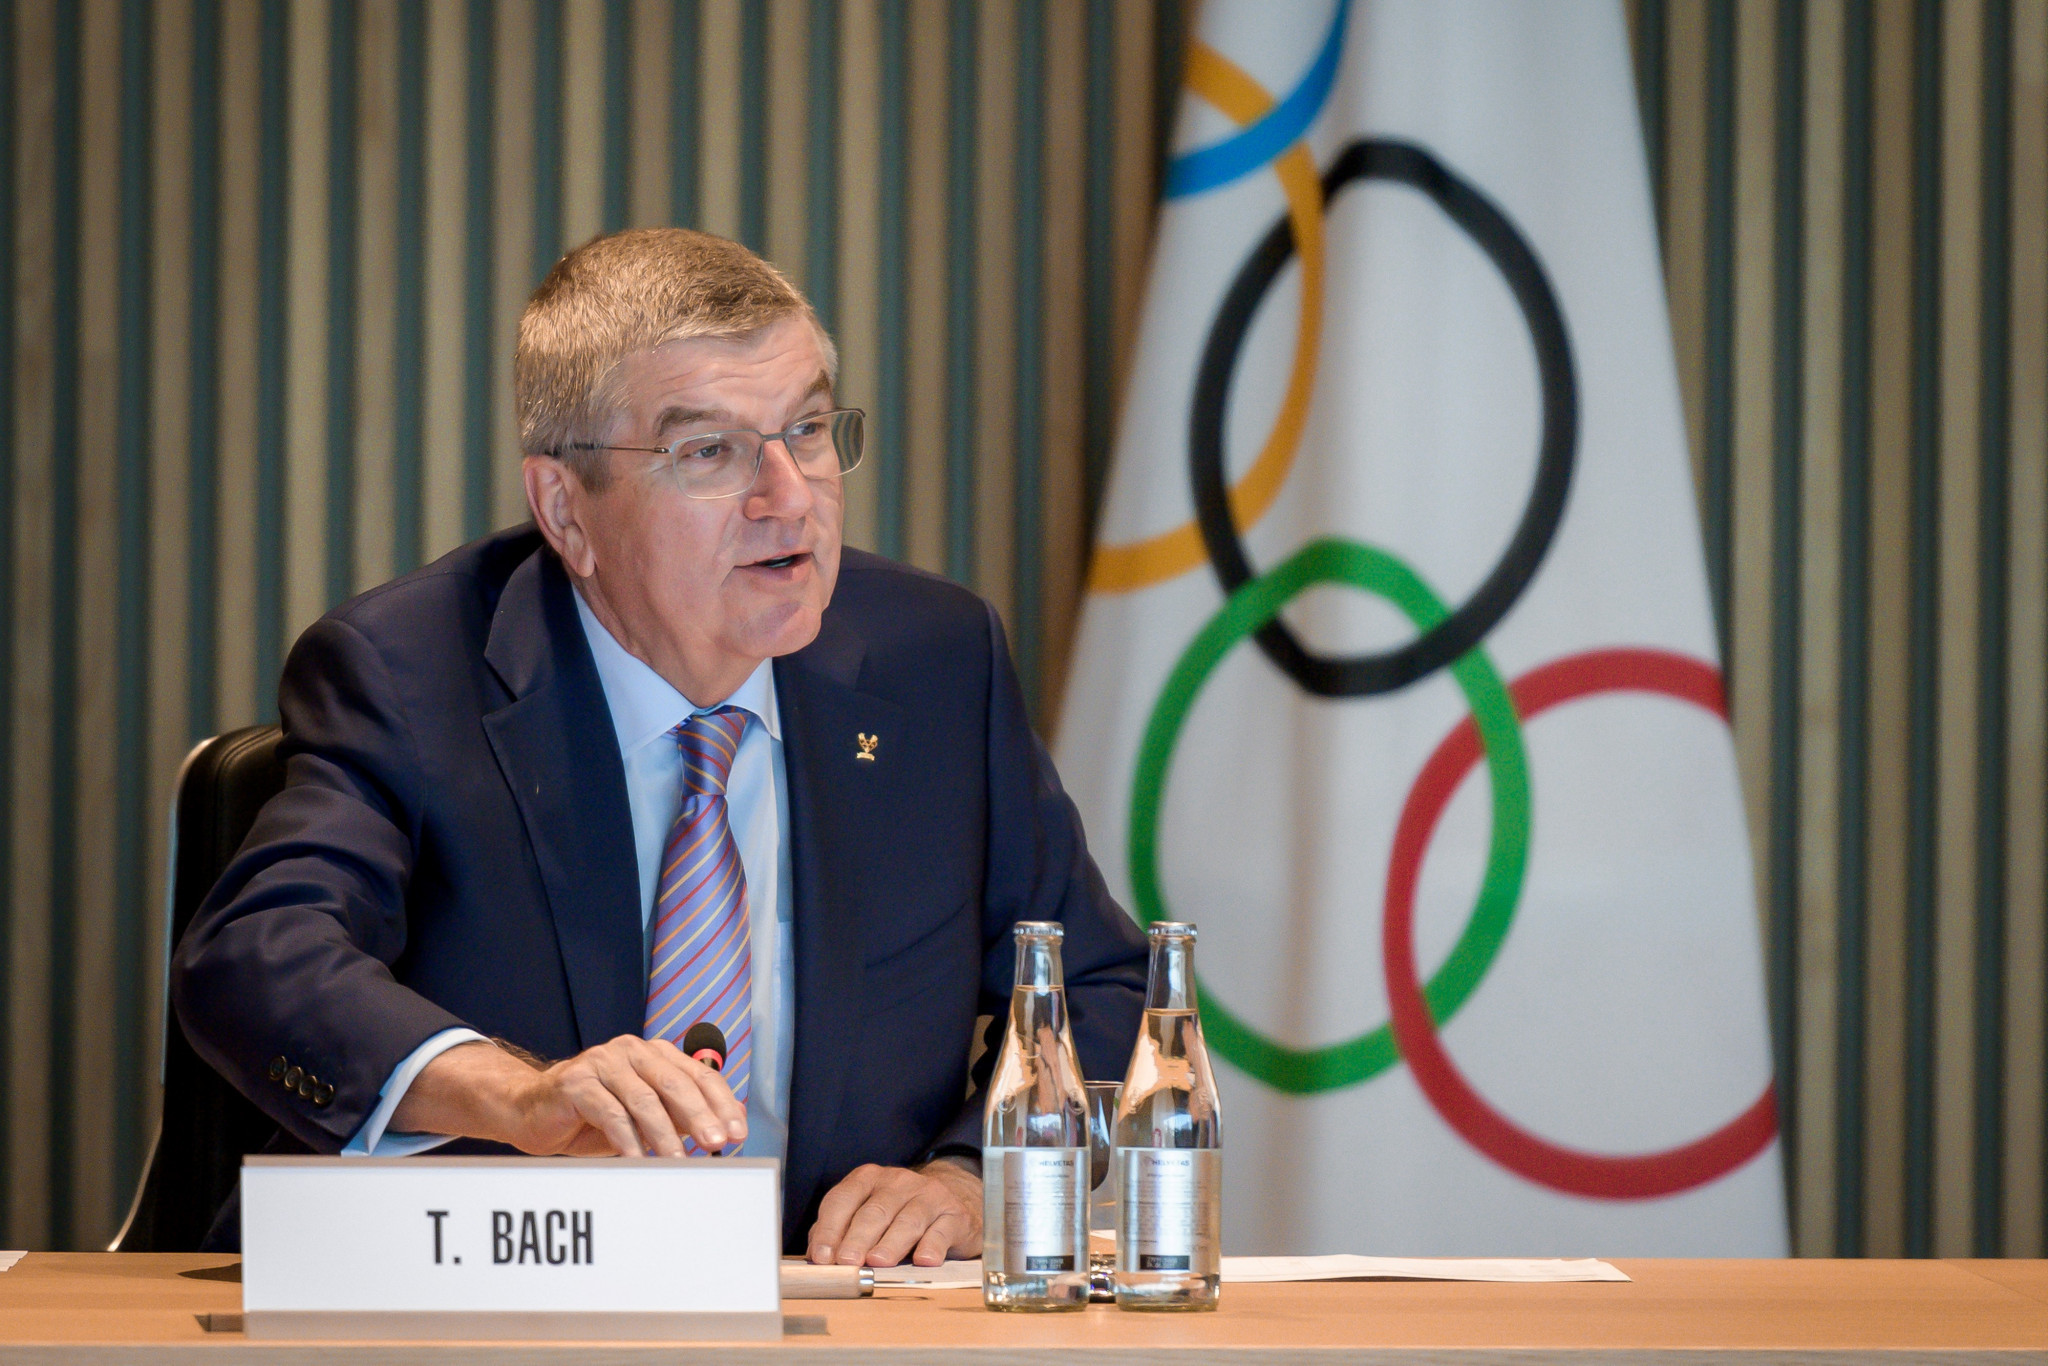 IOC President Thomas Bach said he would write to WADA to seek the information ©Getty Images